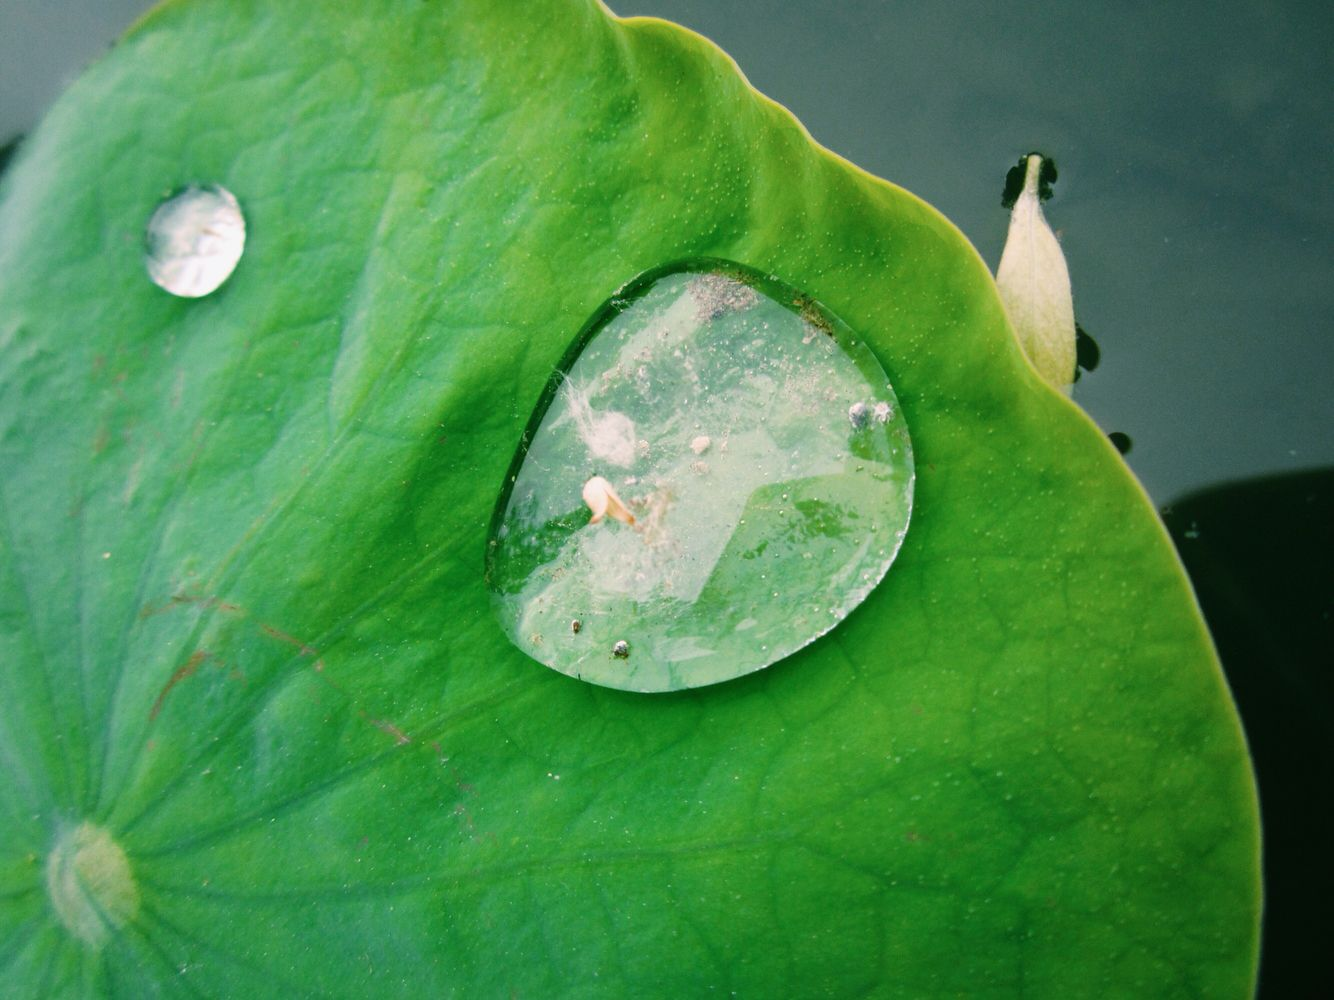 Water Drops In The Leaf